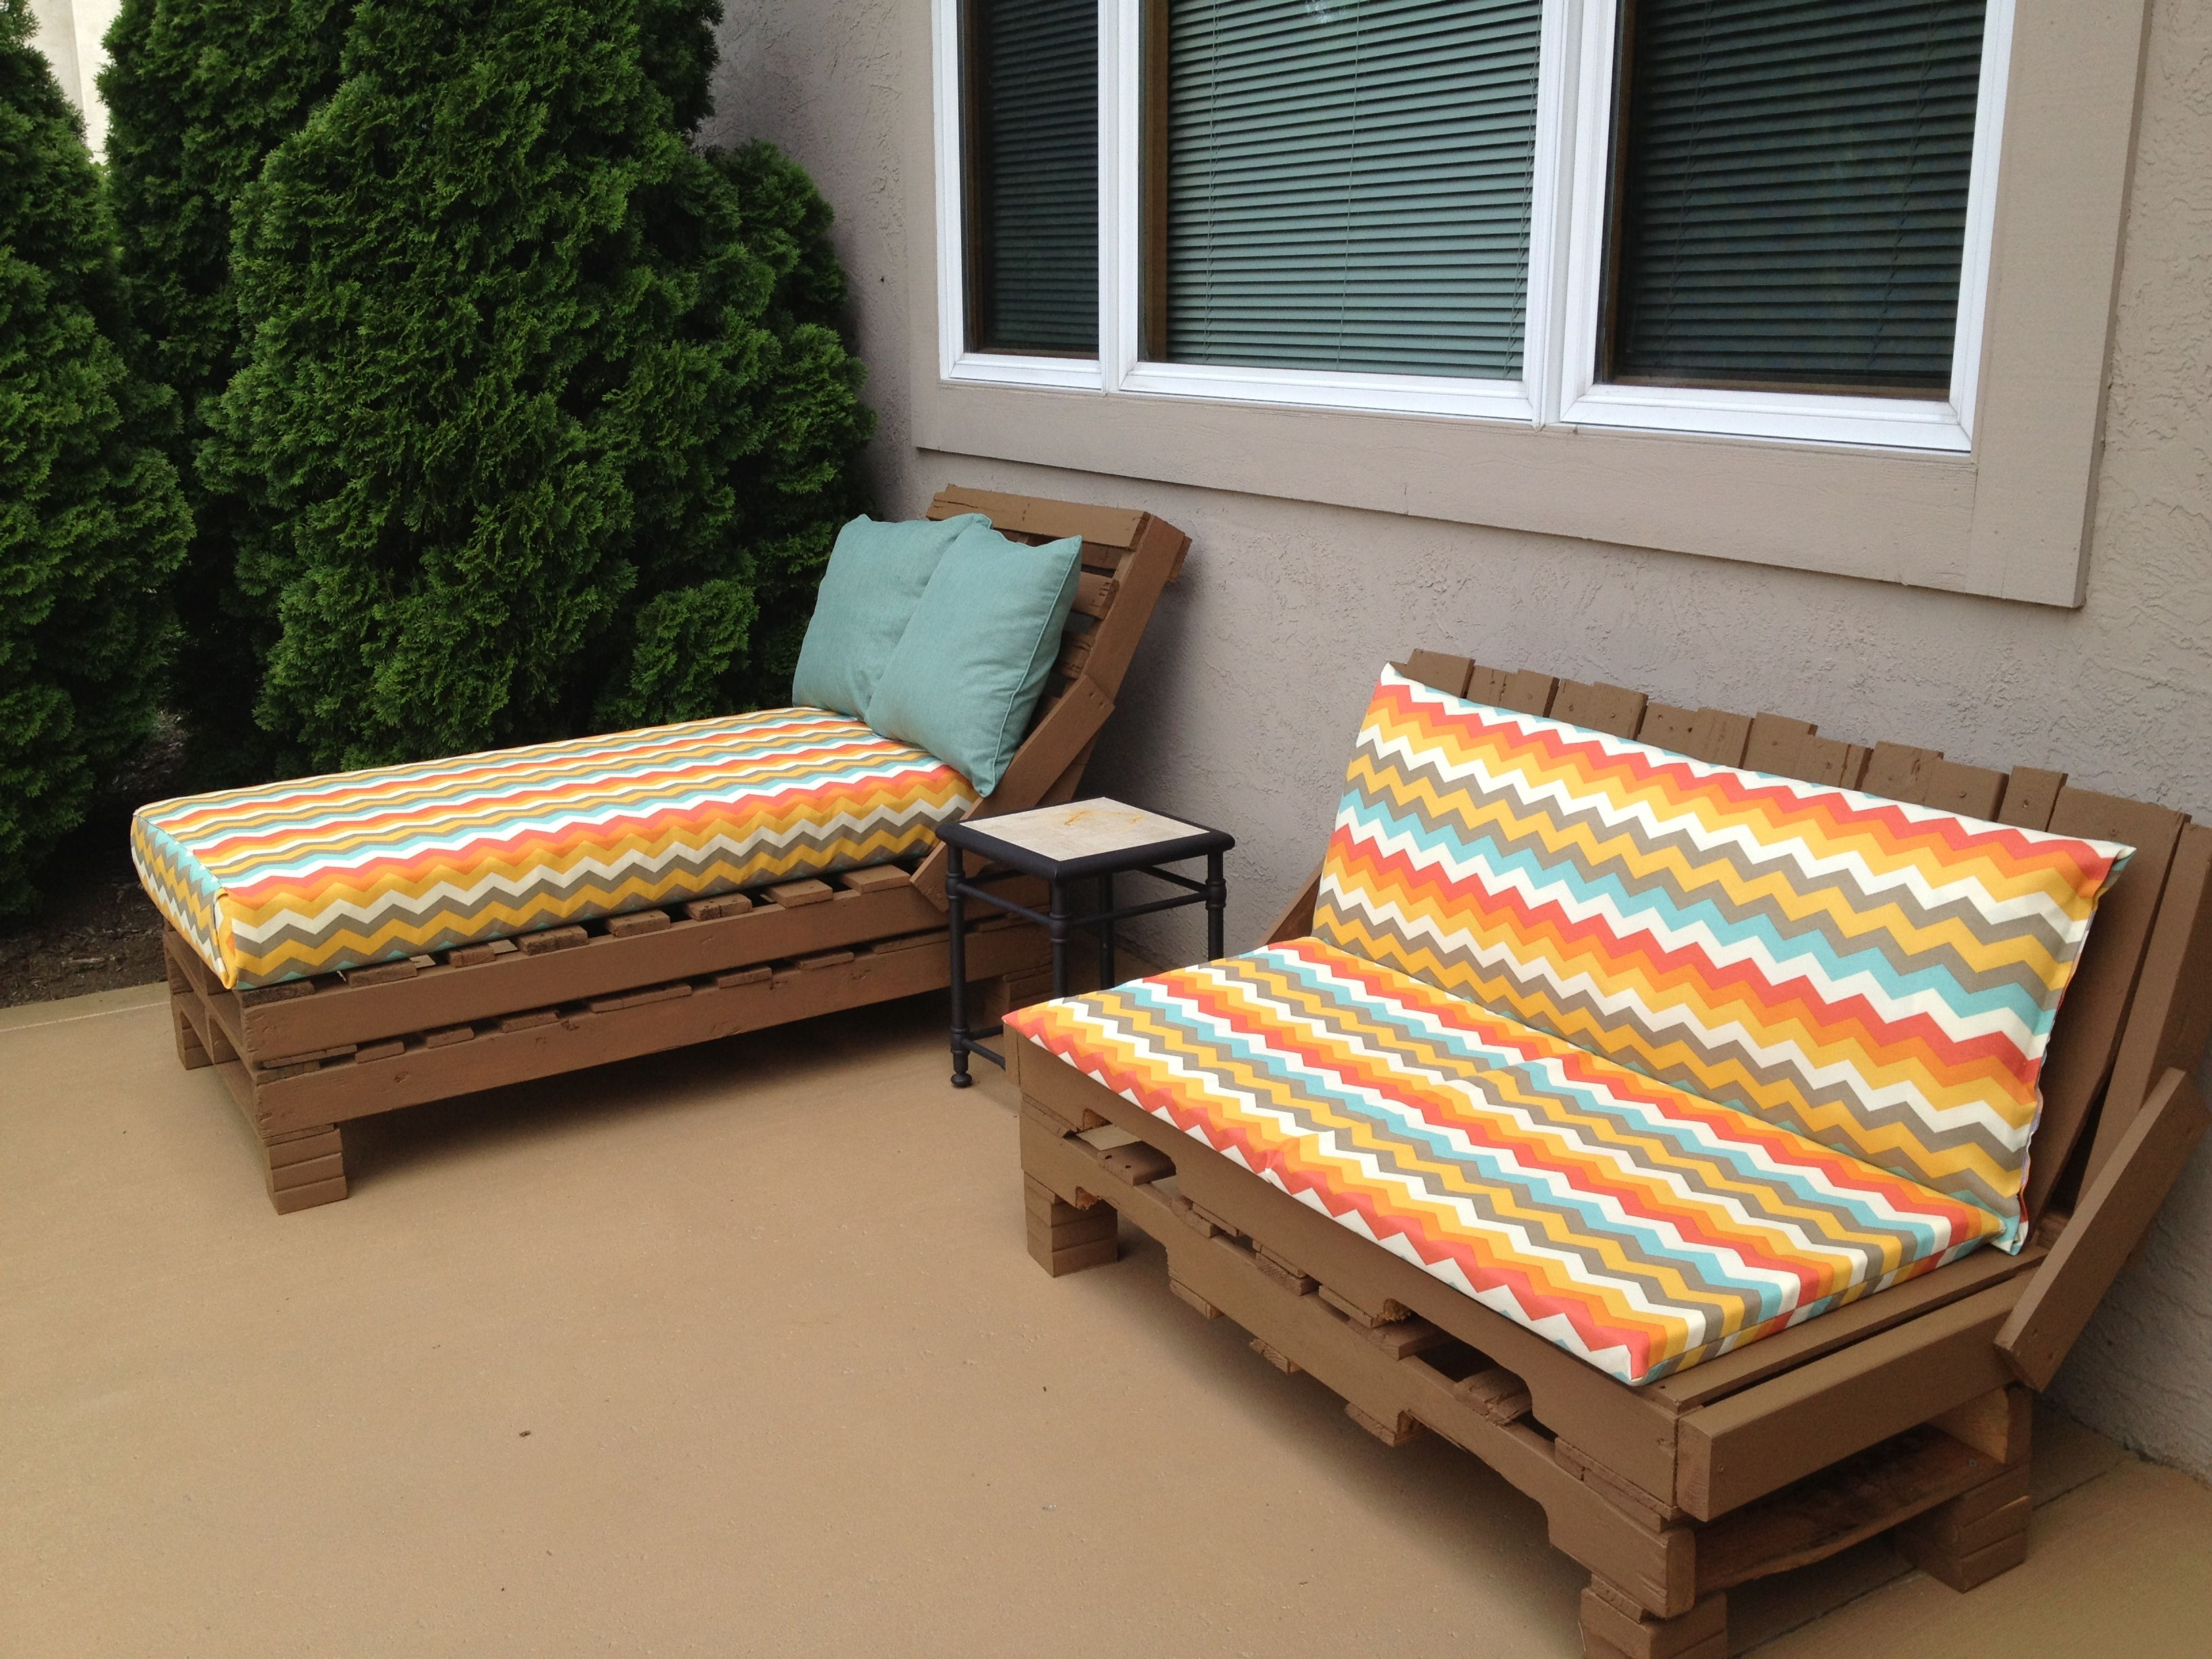 Pallet Patio Furniture So easy Stack pallets nail to her